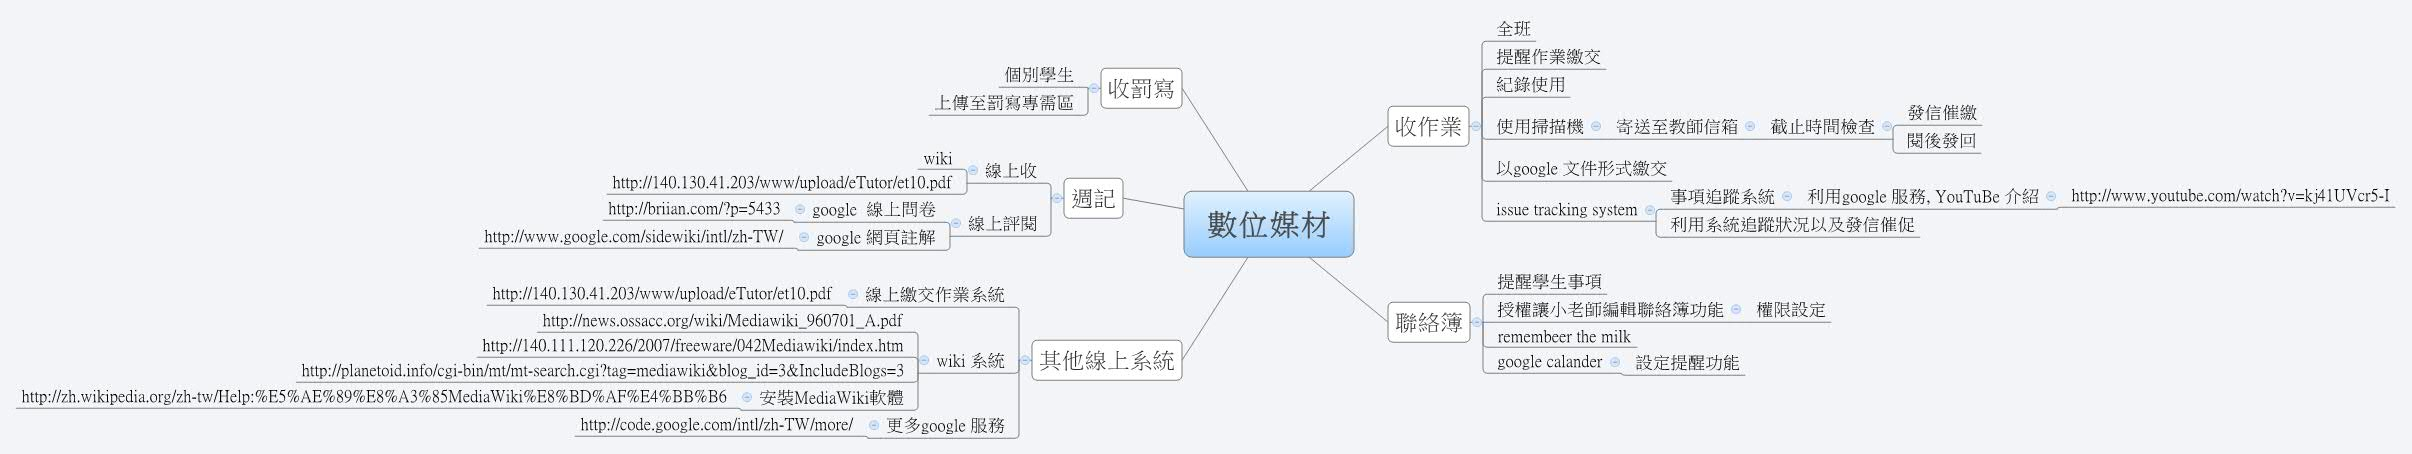 數位媒材 - XMind - Mind Mapping Software